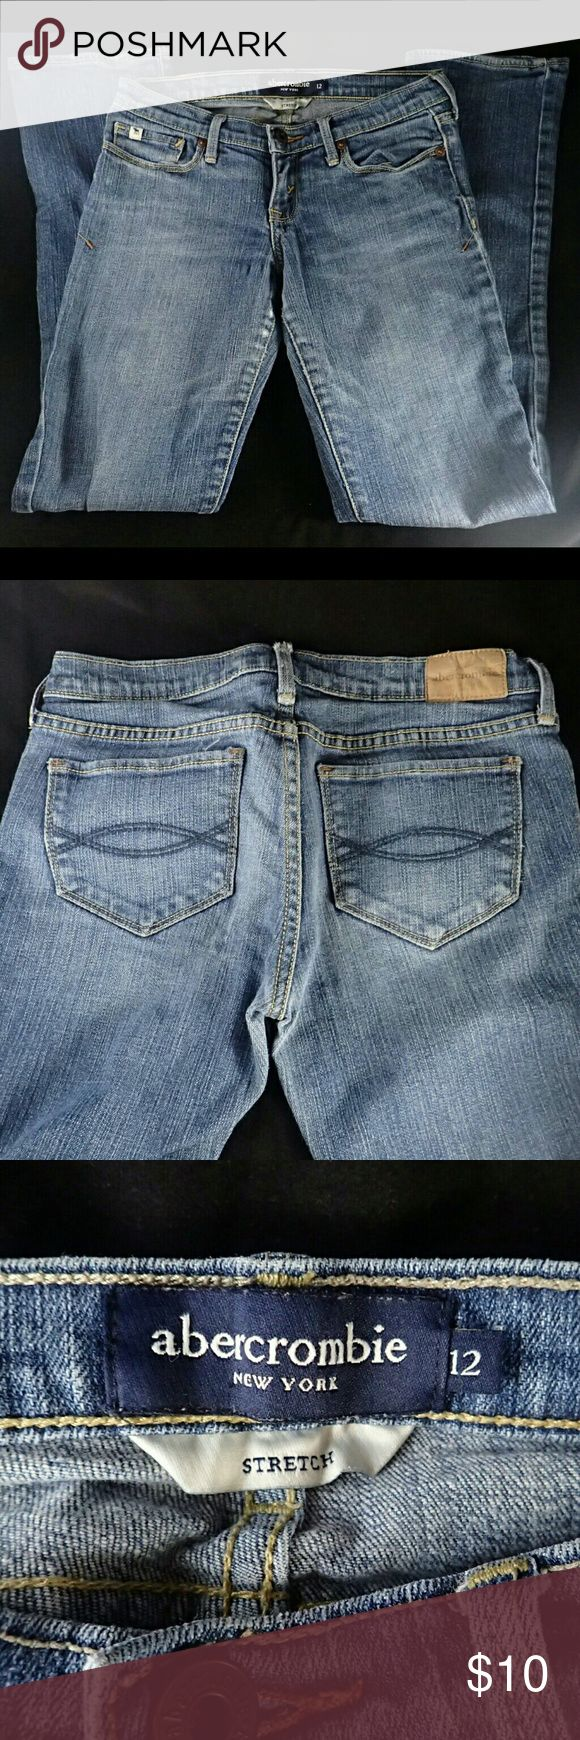 Abercrombie Kids Girls Jeans 12 ℹ️ Worn many times, no damage.  👍 Smoke-free, pet-free household.   🚫 No trades/swaps!  🚫 No holds!  🚫 No low-balling!  🚫 No PayPal!   ✔ Reasonable offers welcomed! Please use the offer button so I know you are serious about the item! I will not respond to price negotiations via comments.  ✔ I love bundling! Not only will you get ONE shipping fee, I will also discount your combined total! Please ask me in the comments!  😜 Happy poshing! 😜 Abercombie…